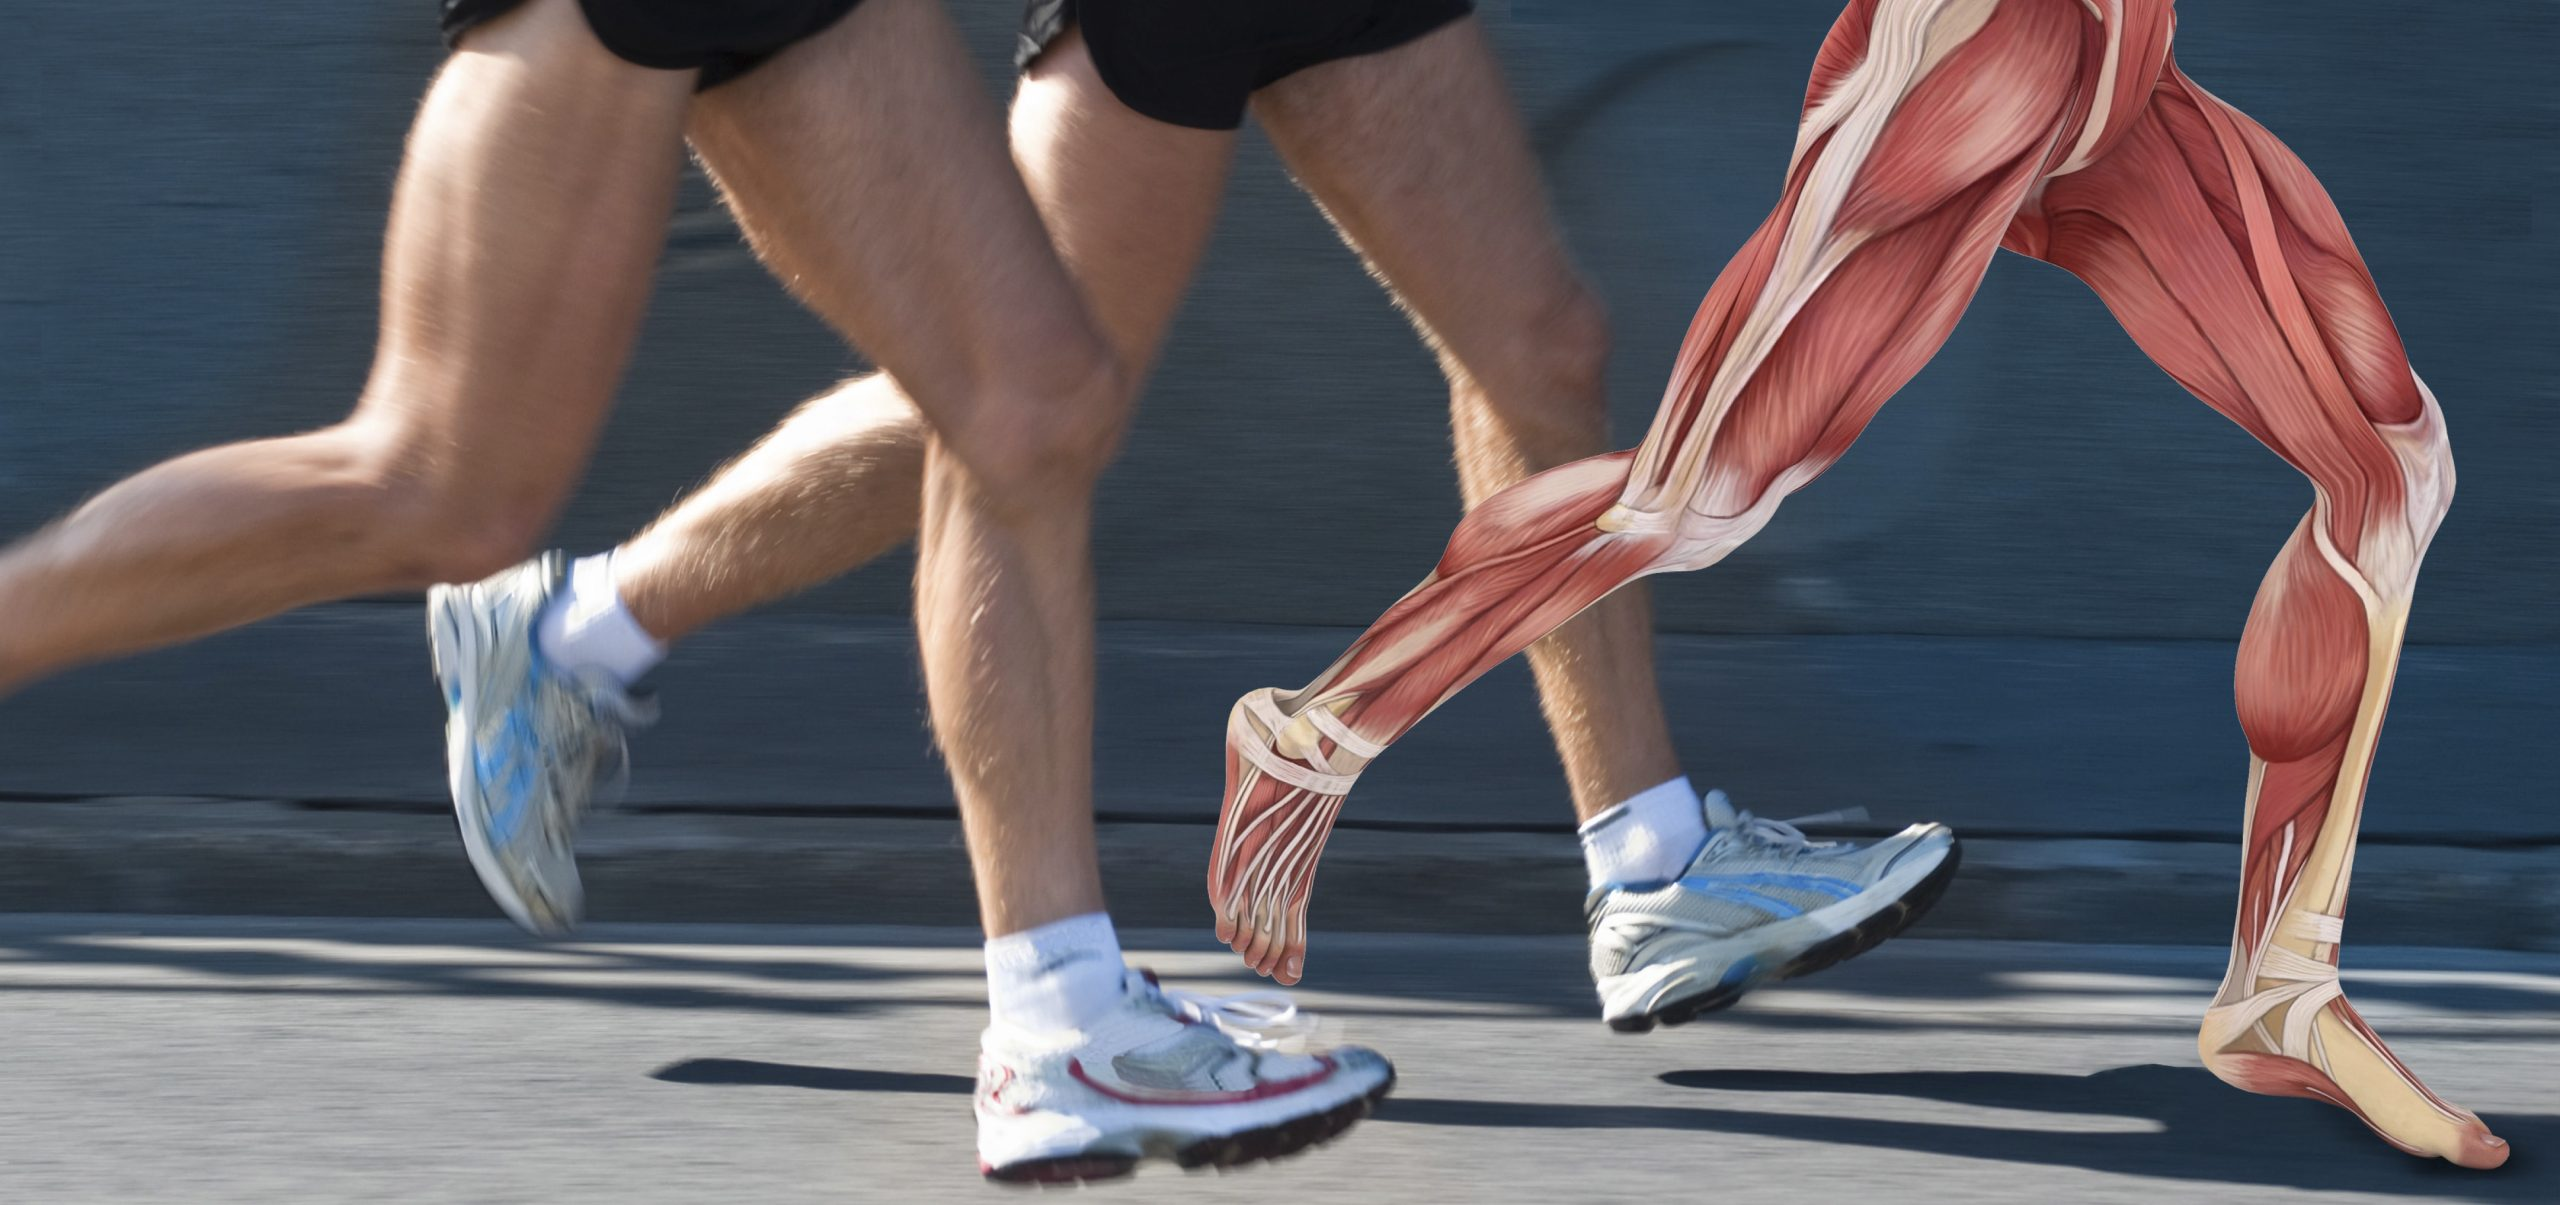 New Tendon Science: Clinical Management Implications